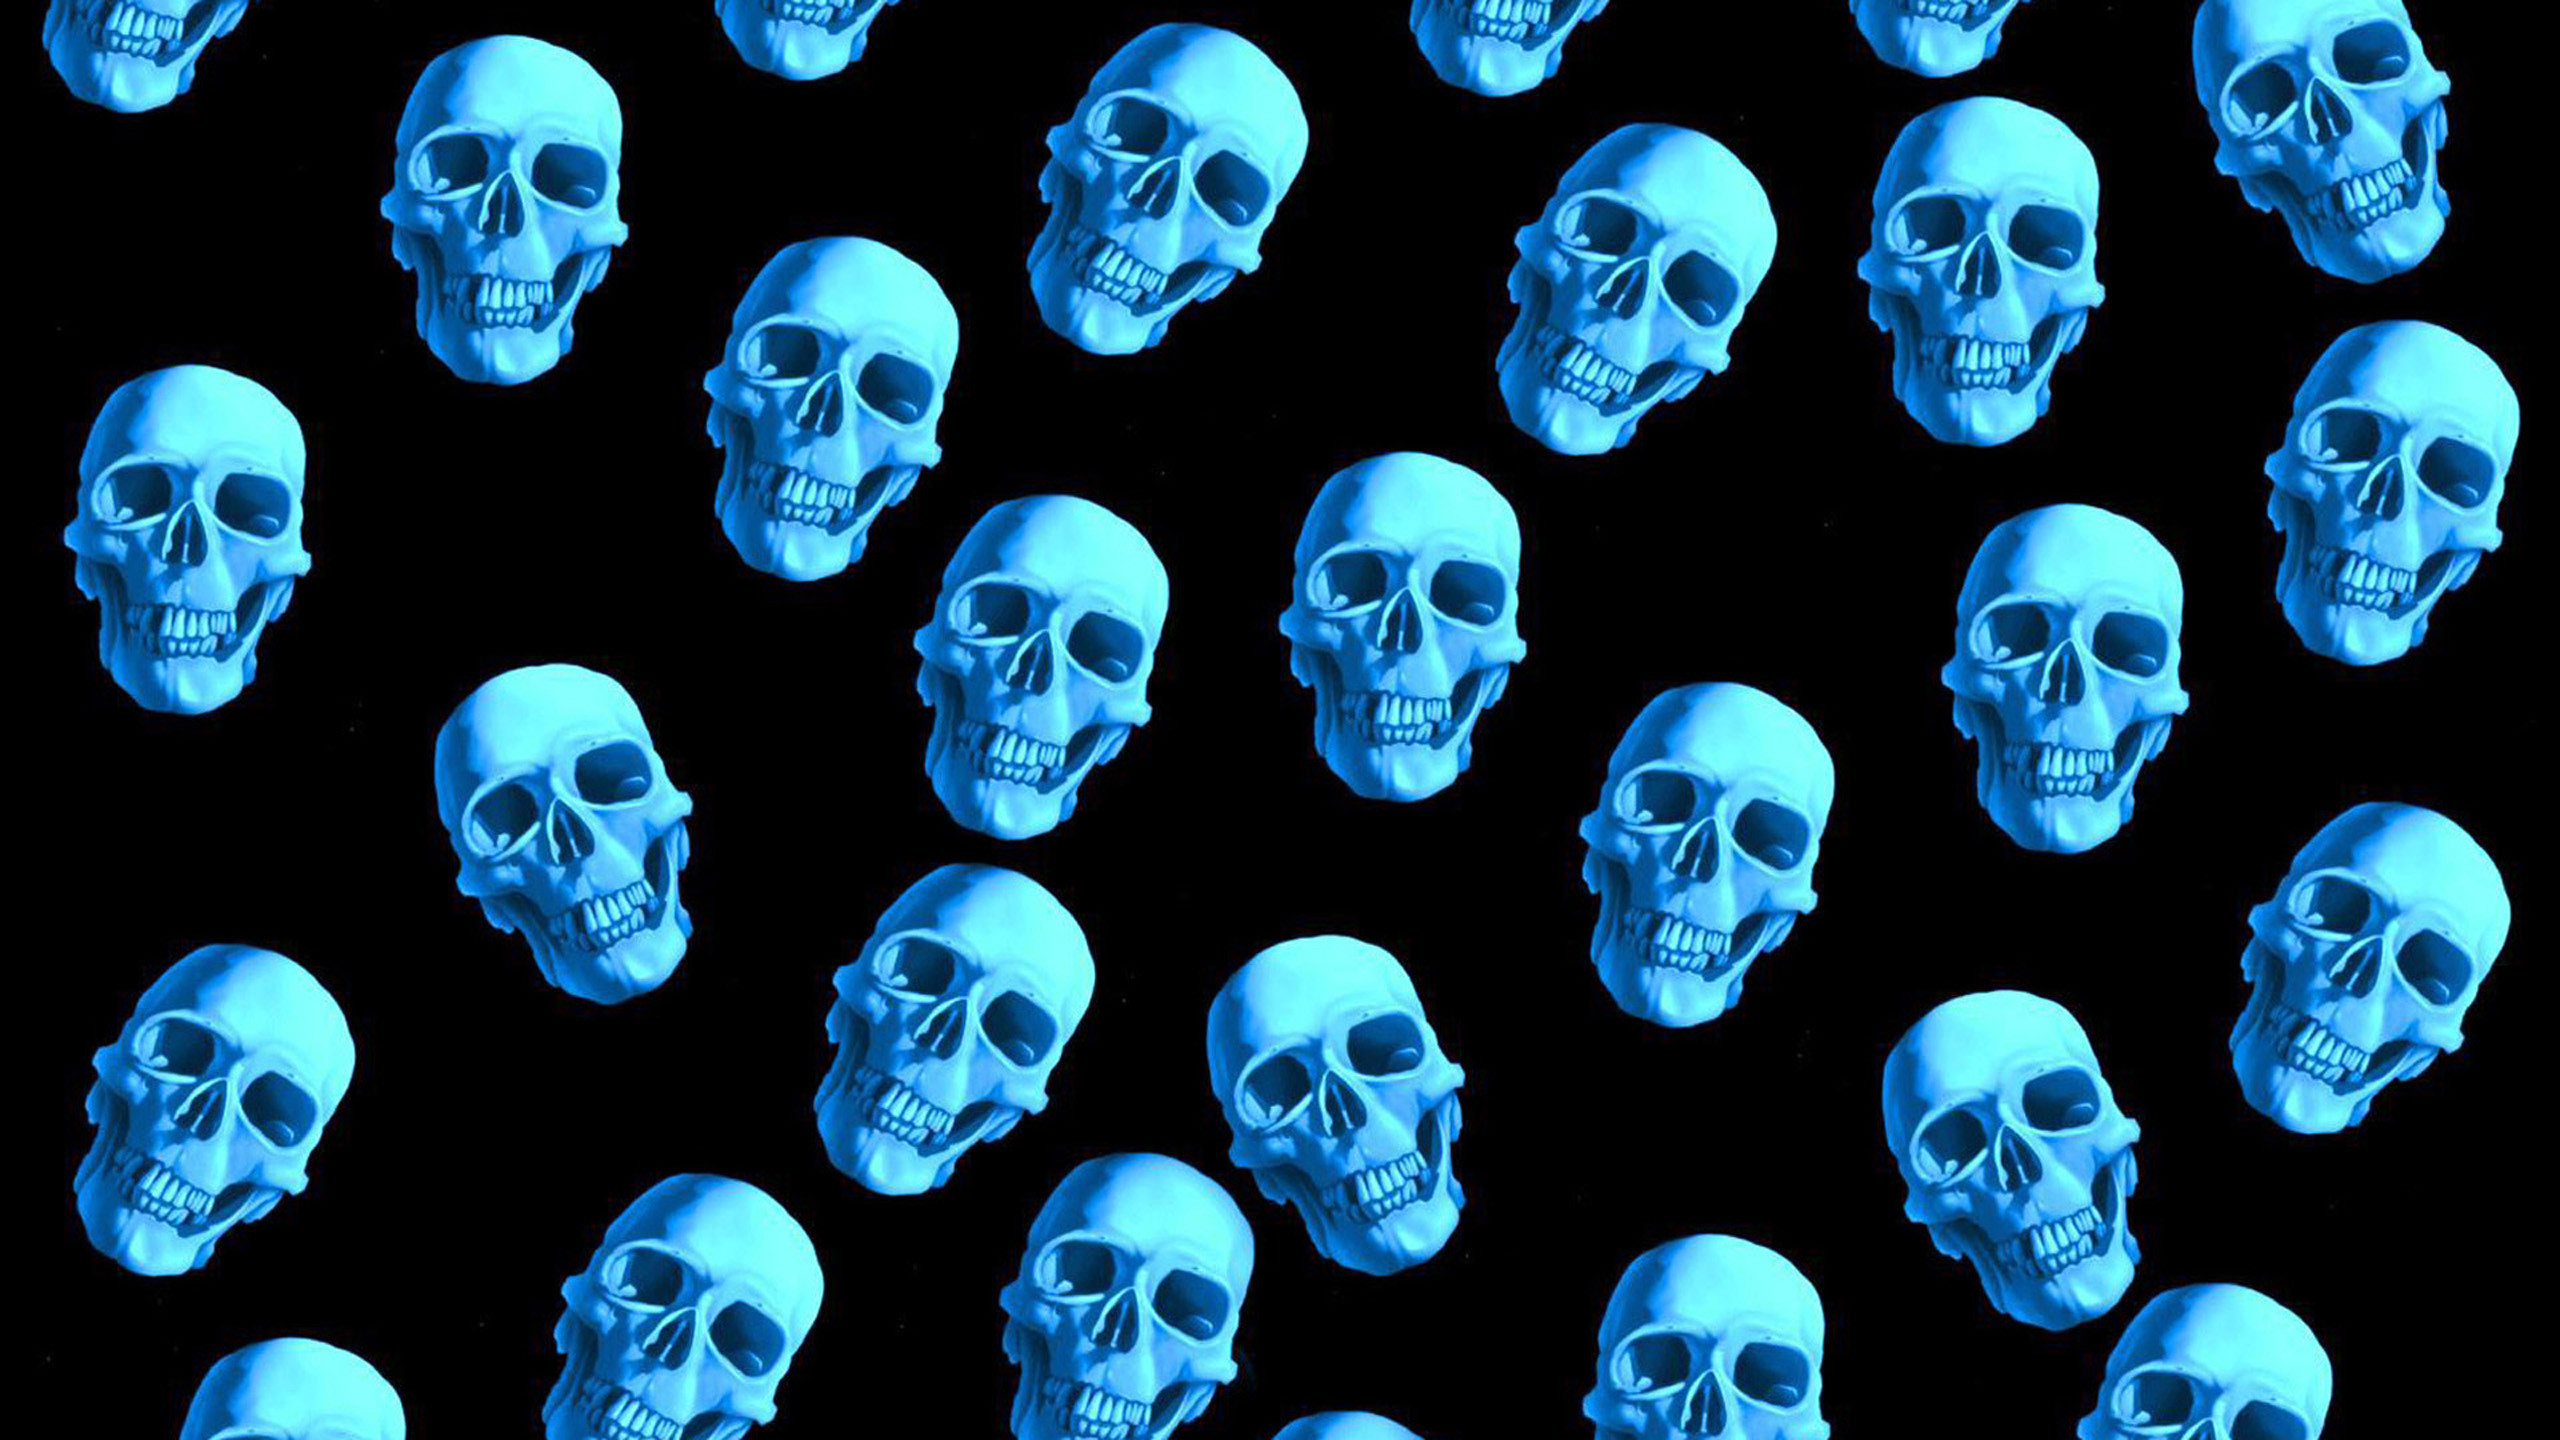 2560x1440 Blue Skull Backgrounds (38 Wallpapers)